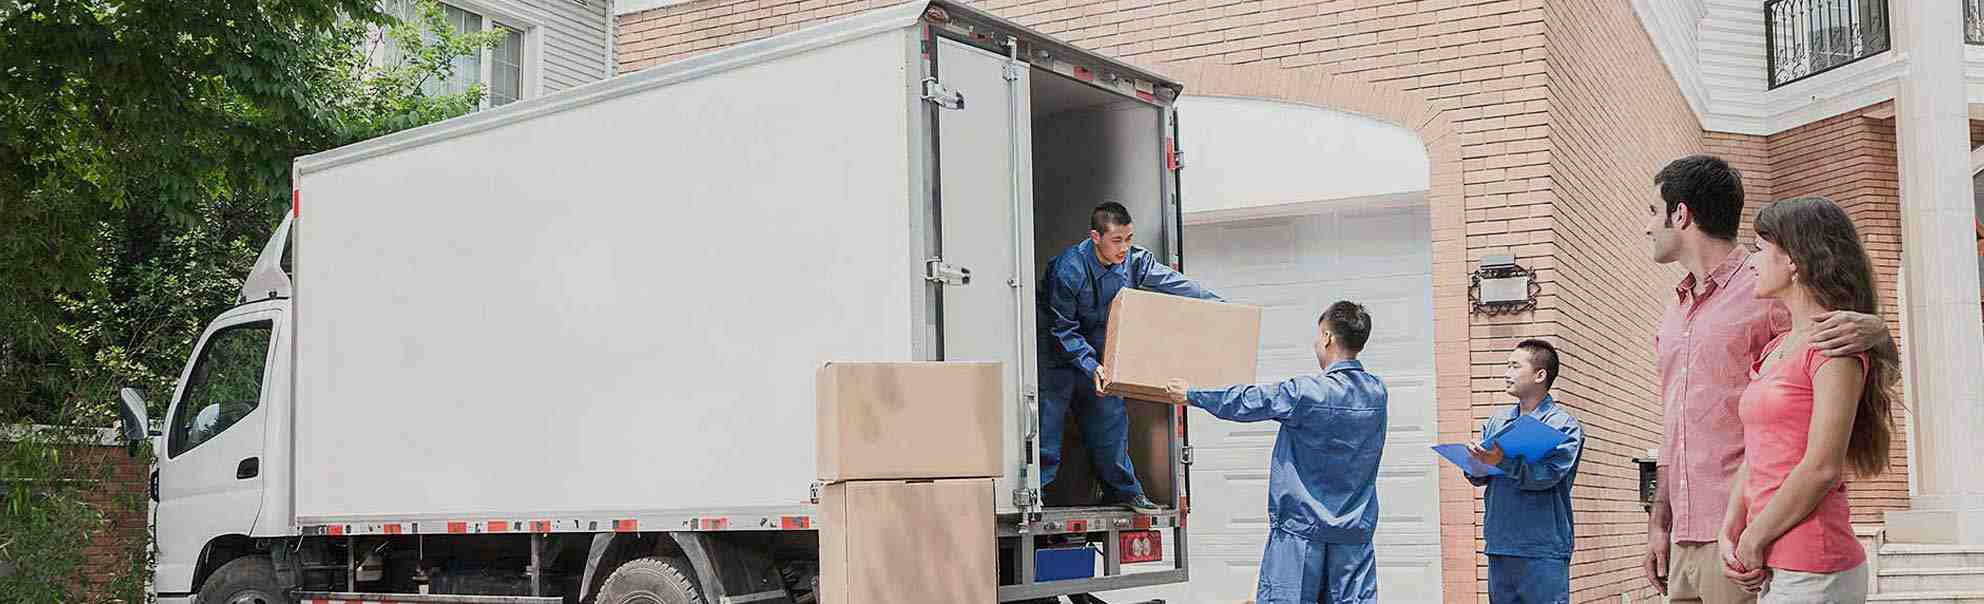 Packers and Movers Sector 39